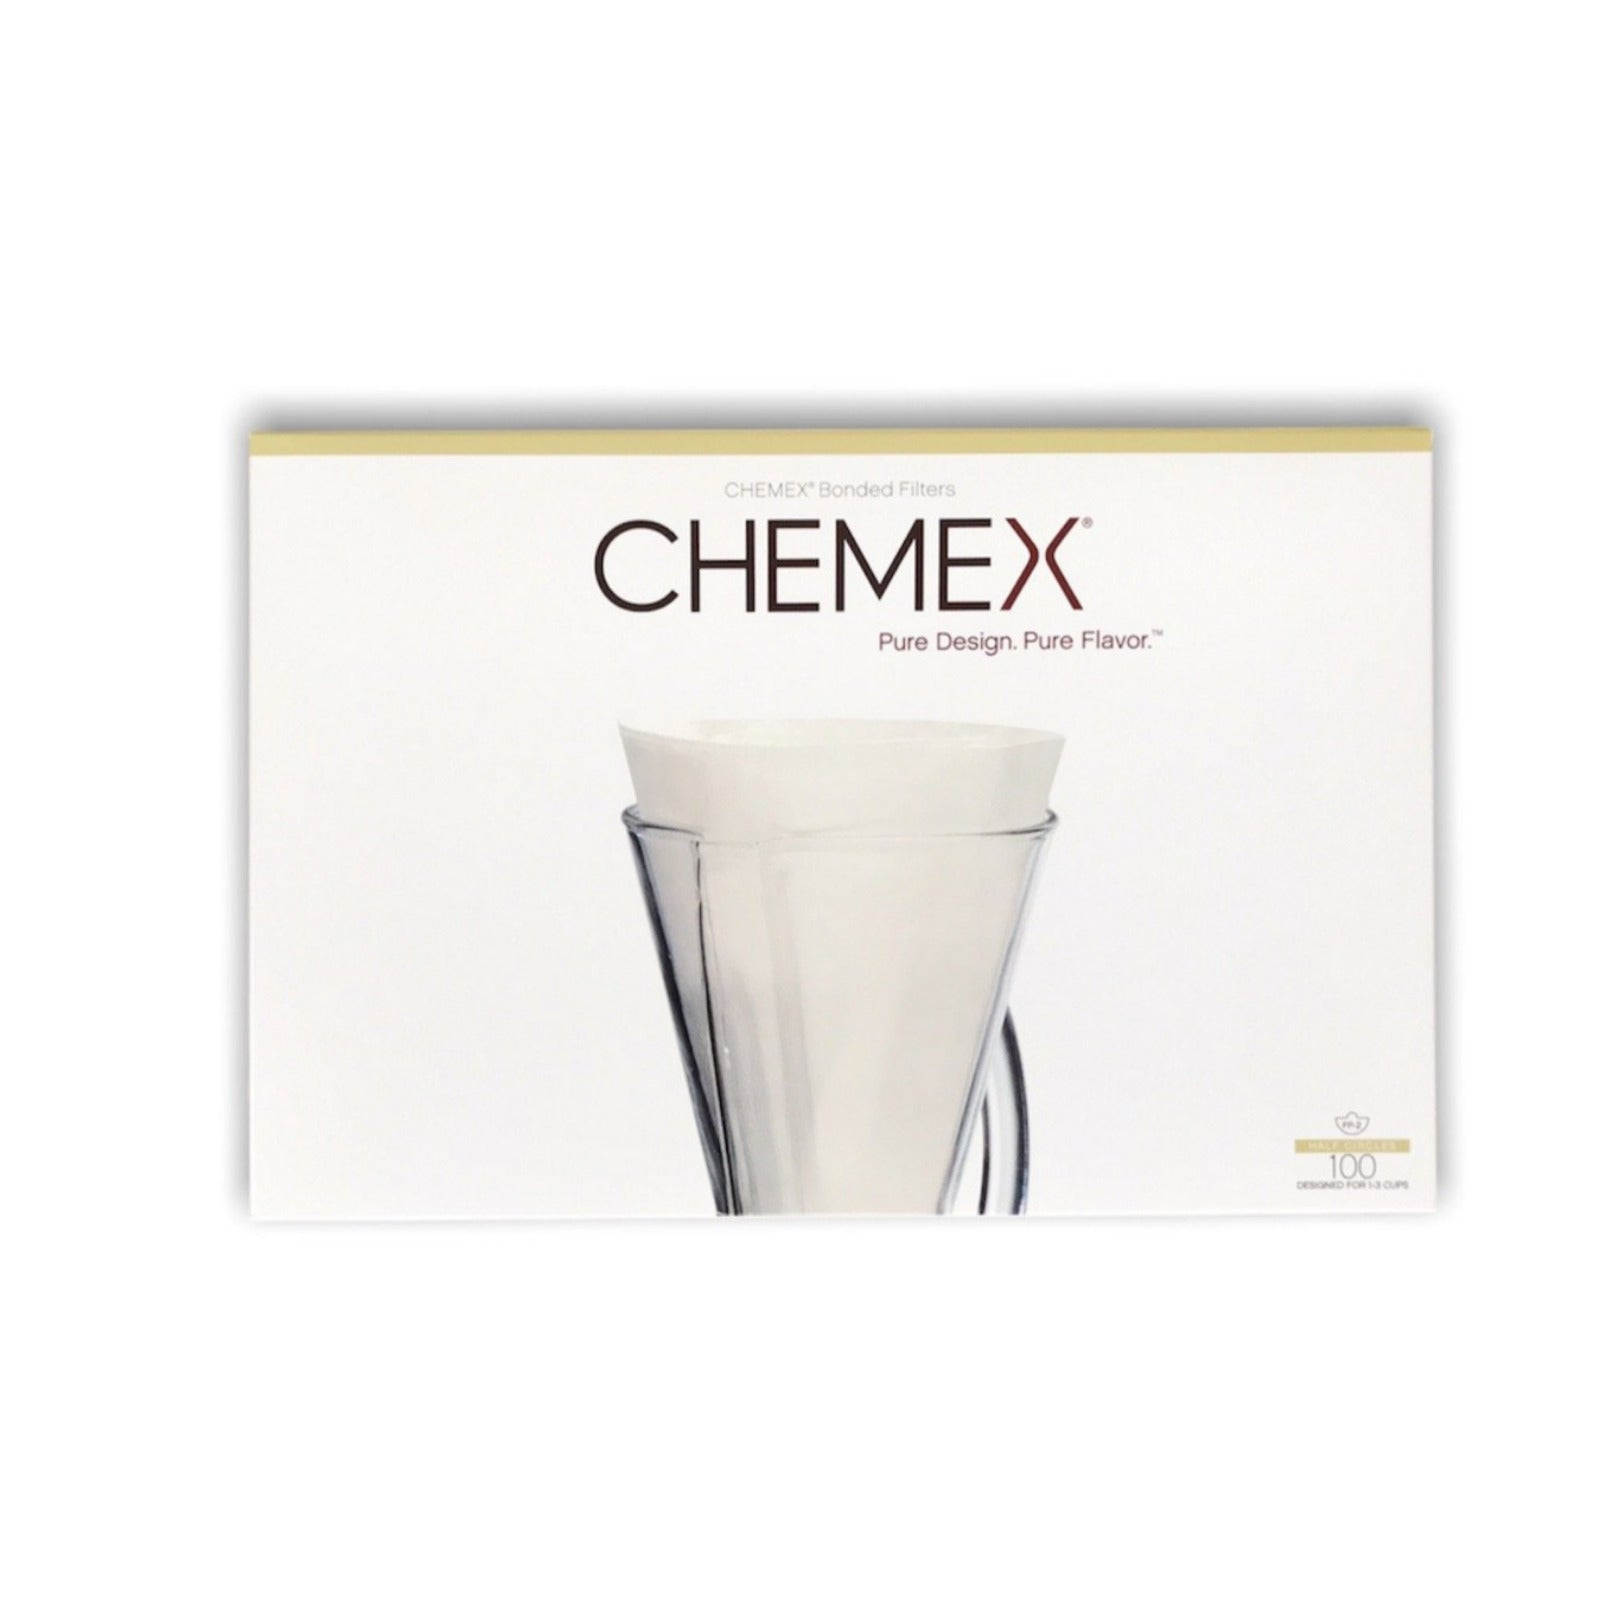 Chemex Unfolded Filters (Pint)